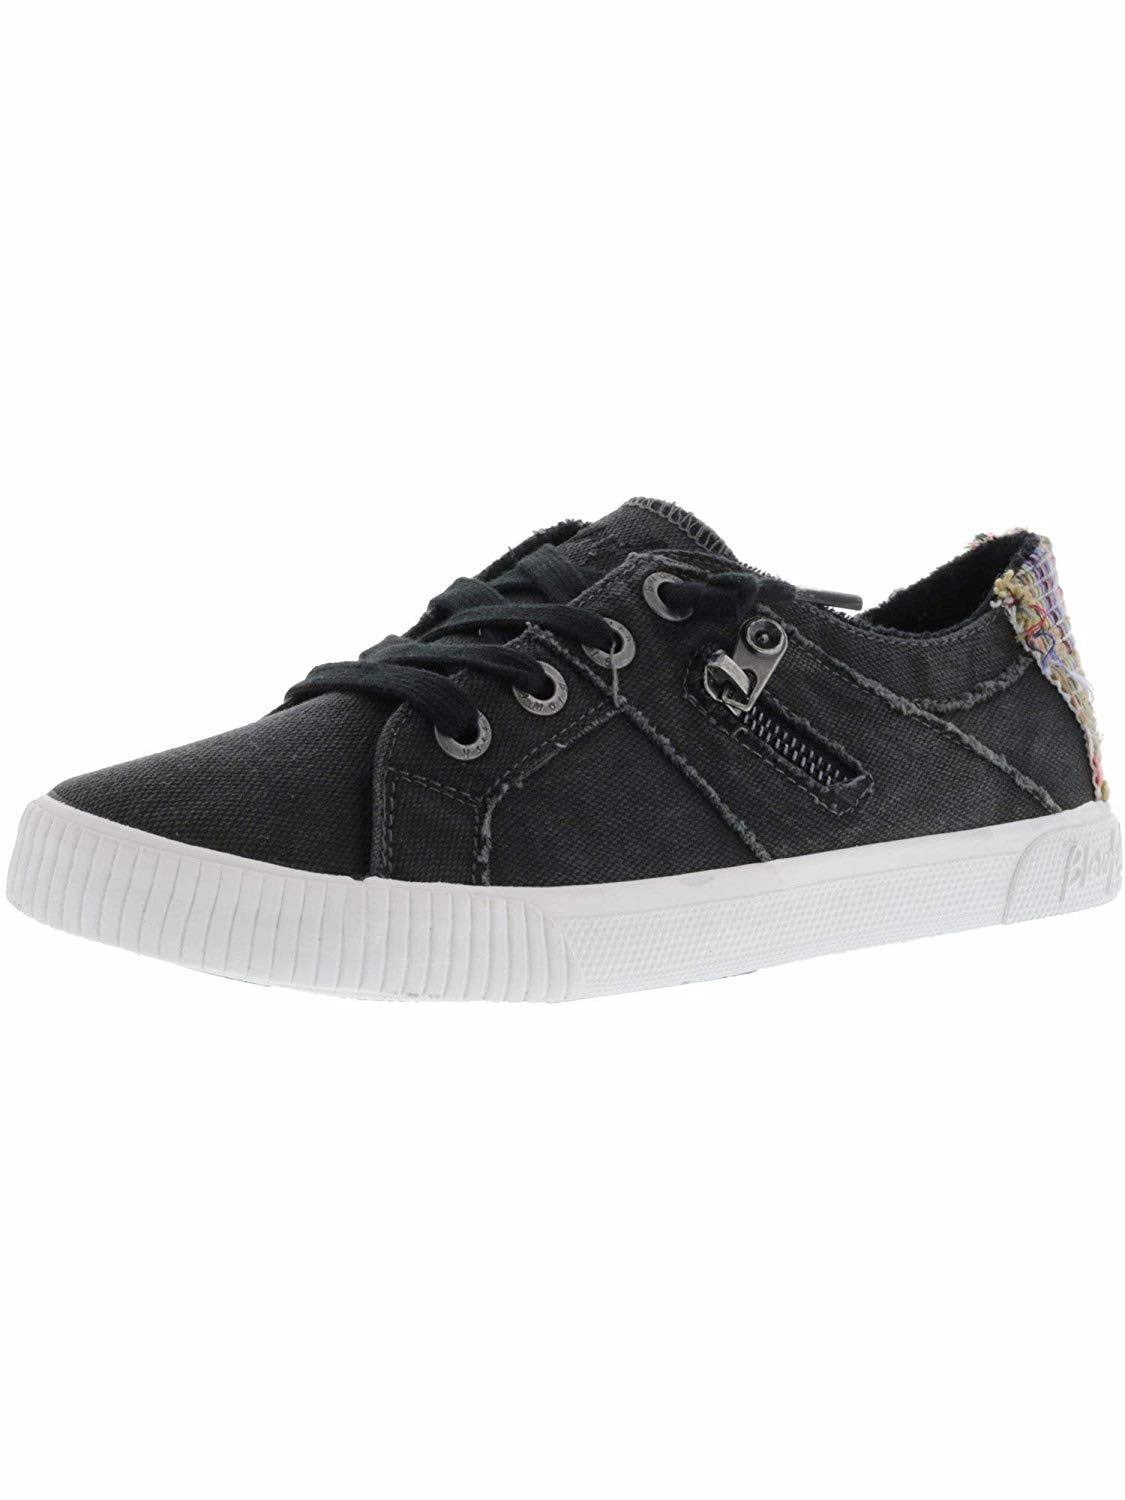 Blowfish Women's Fruit Sneakers - Black Smoked Canvas, Size 8.5